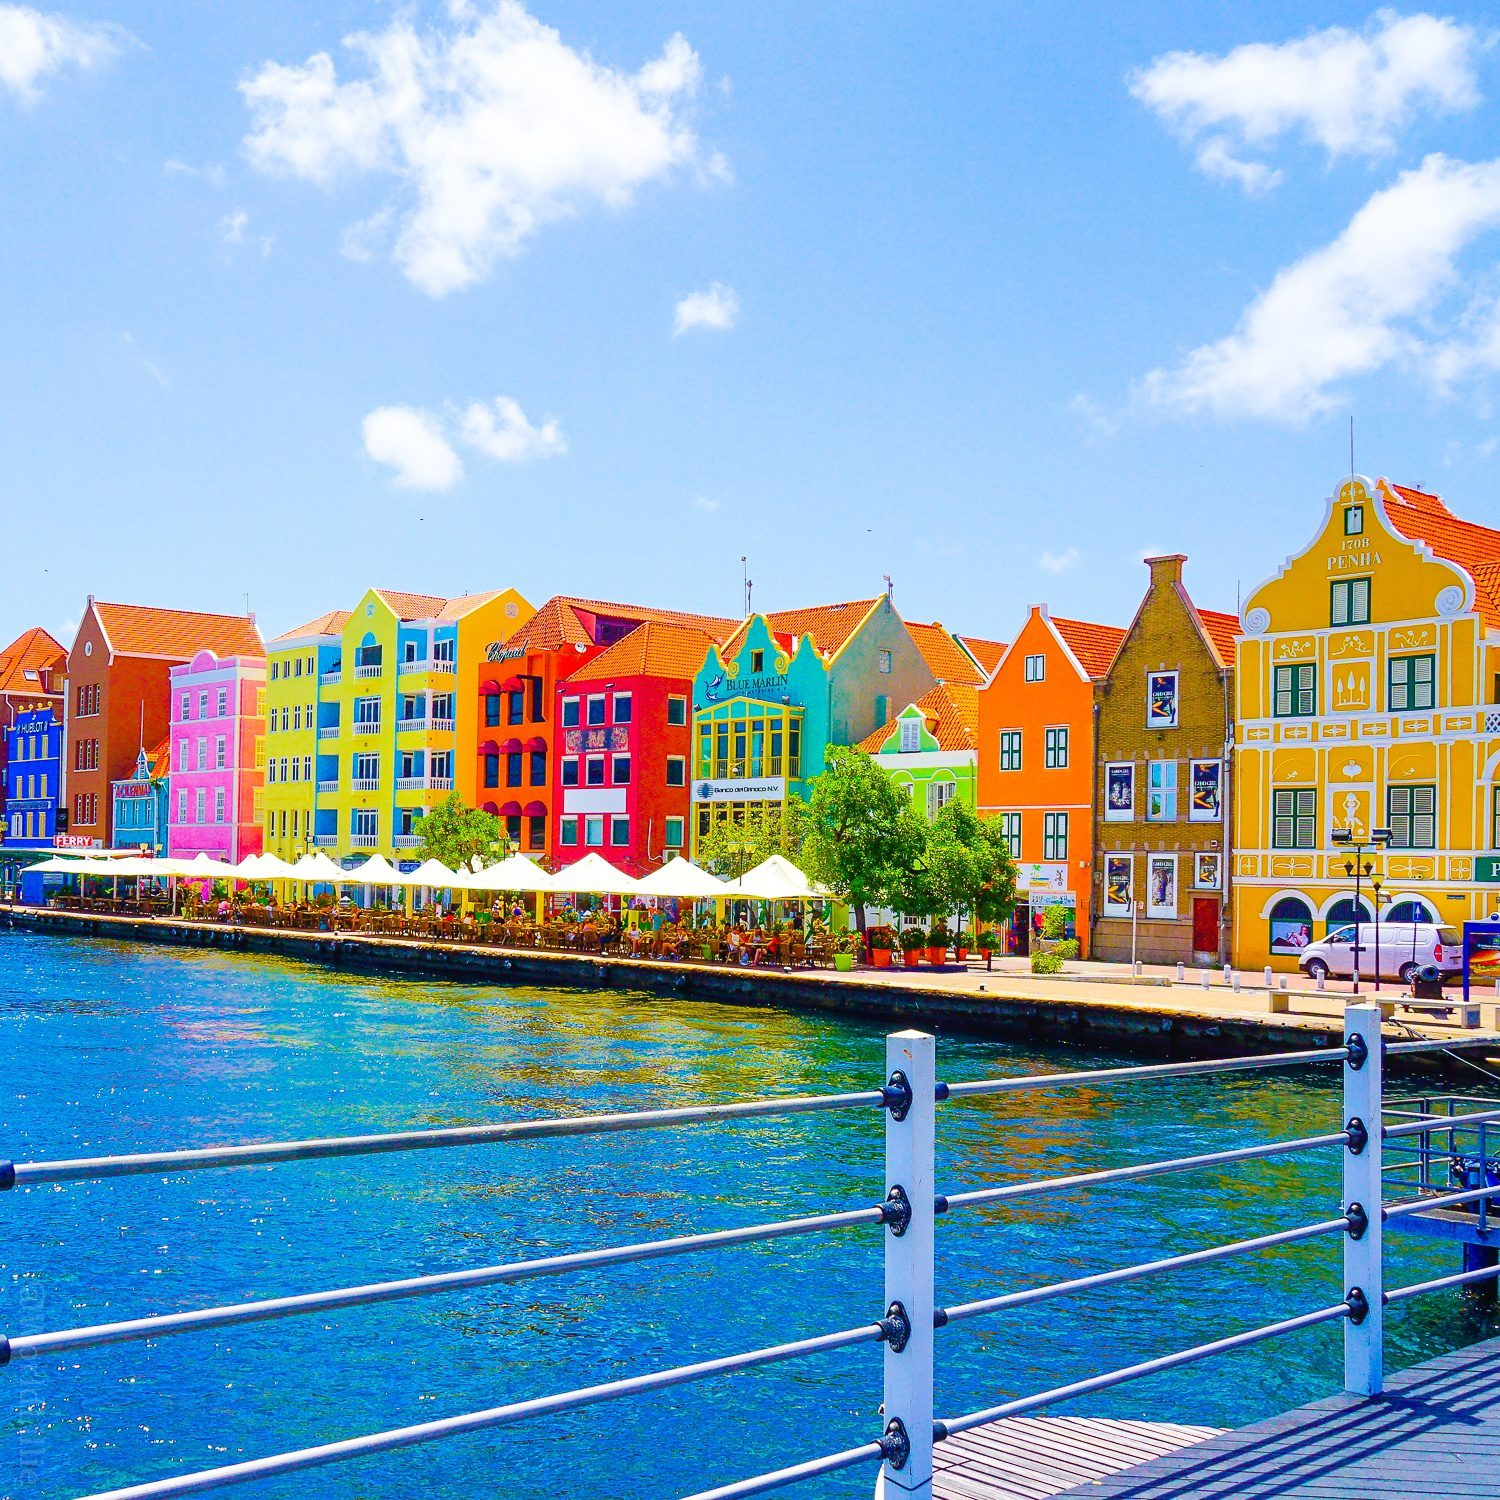 The famed rainbow waterfront of Willemstad!